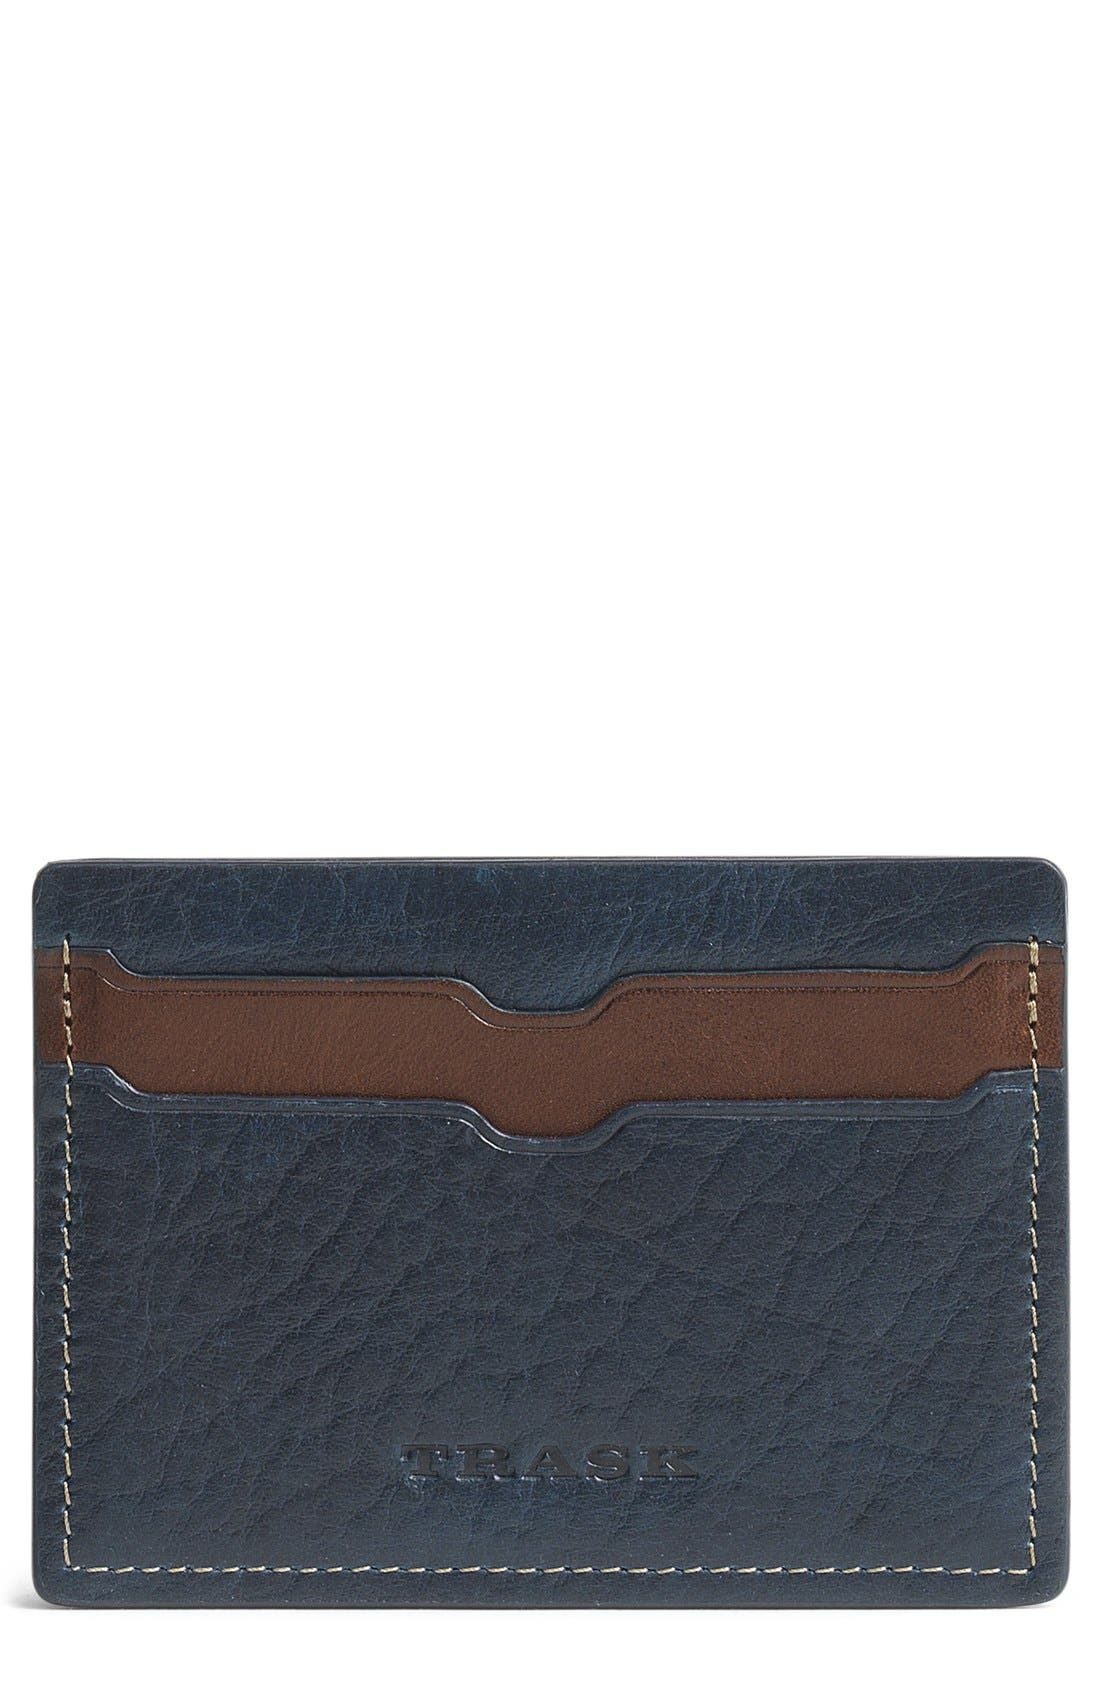 'Jackson' Leather Card Case,                             Main thumbnail 1, color,                             400